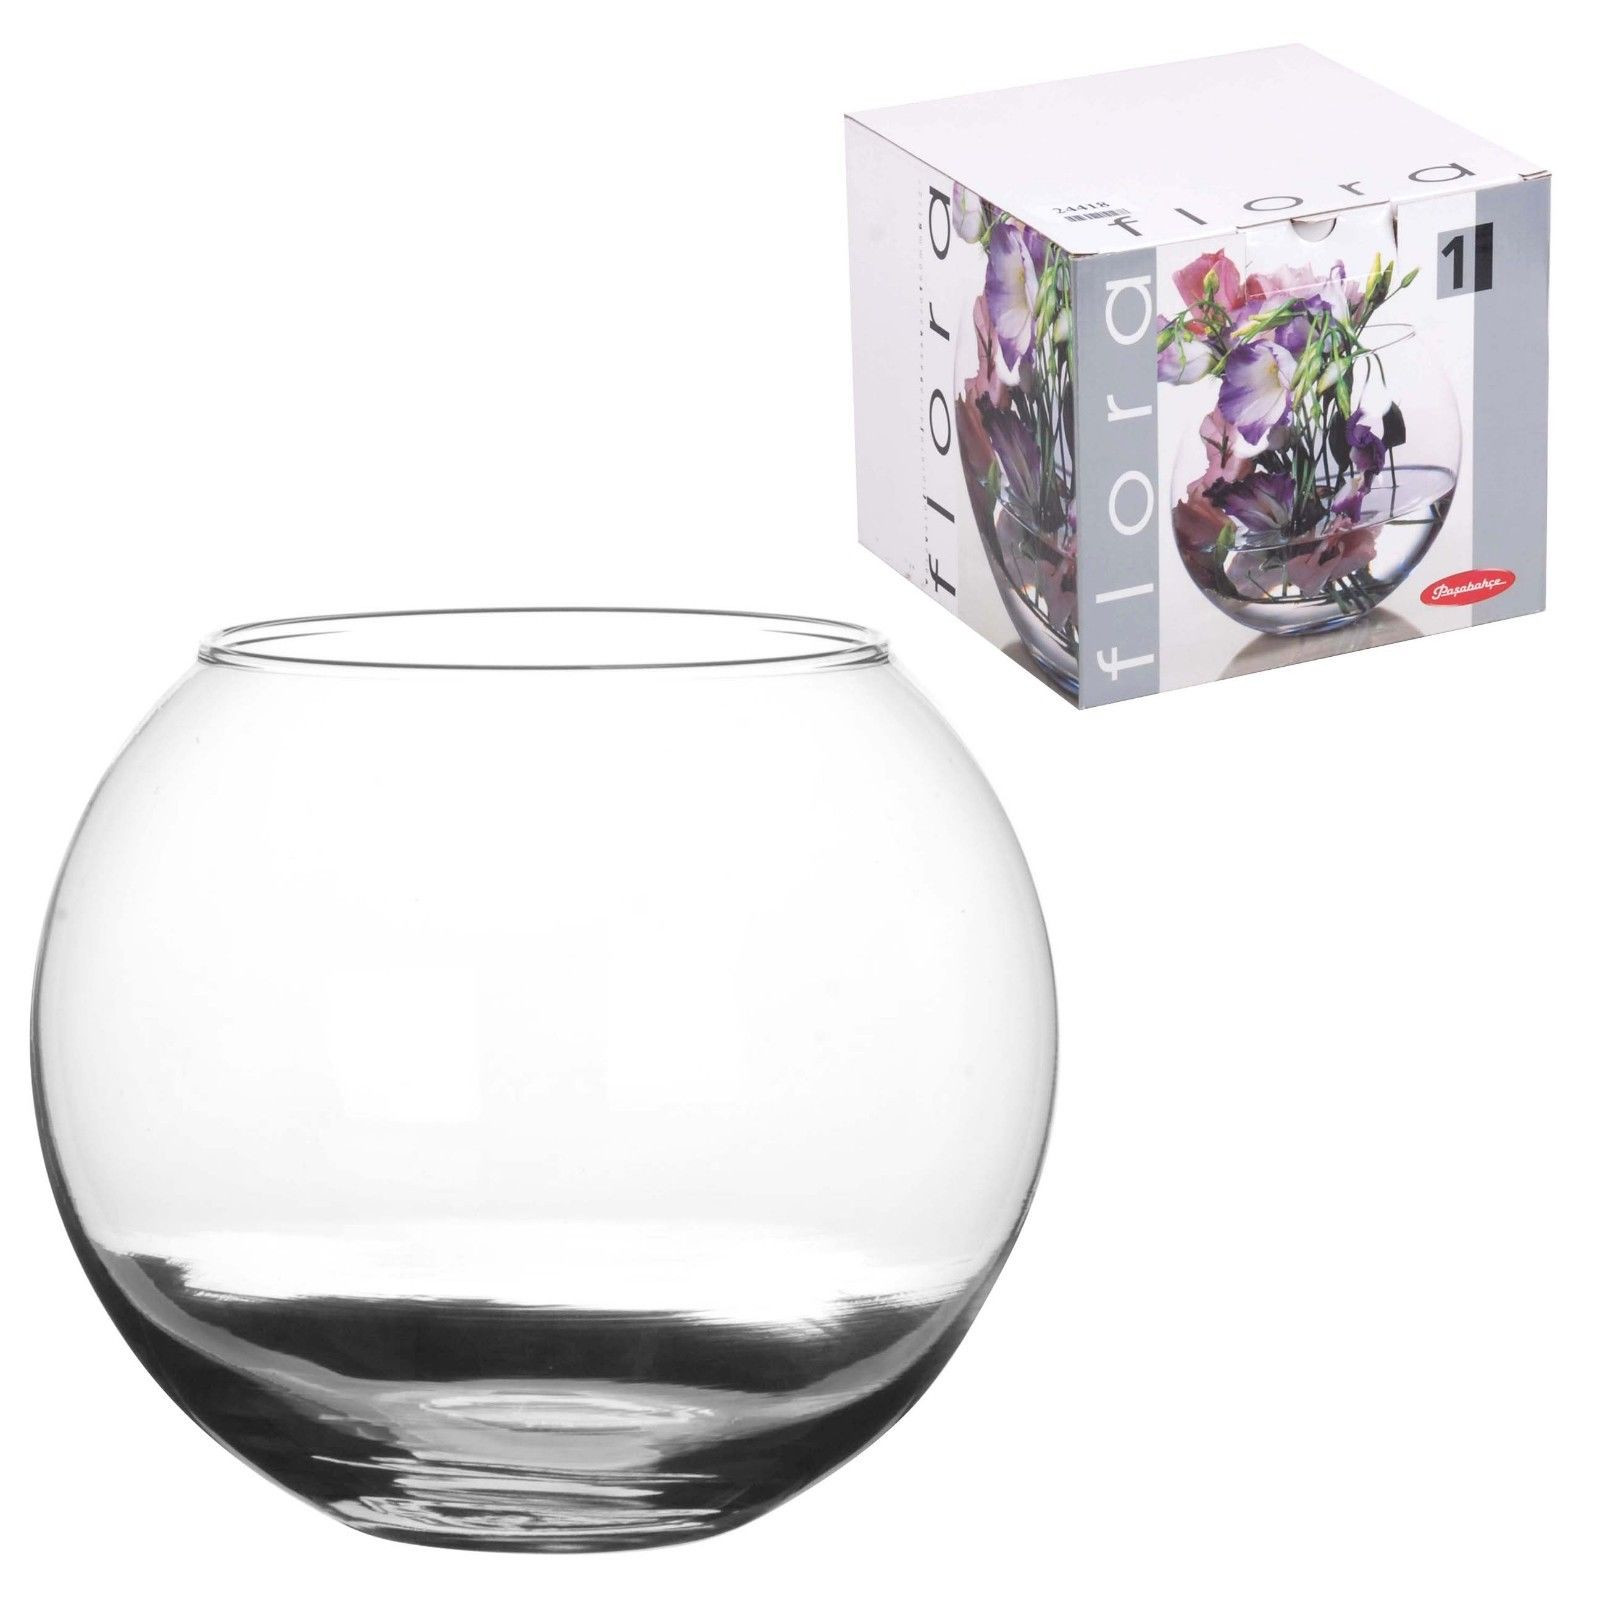 22 attractive Decorative Fish Bowl Vases